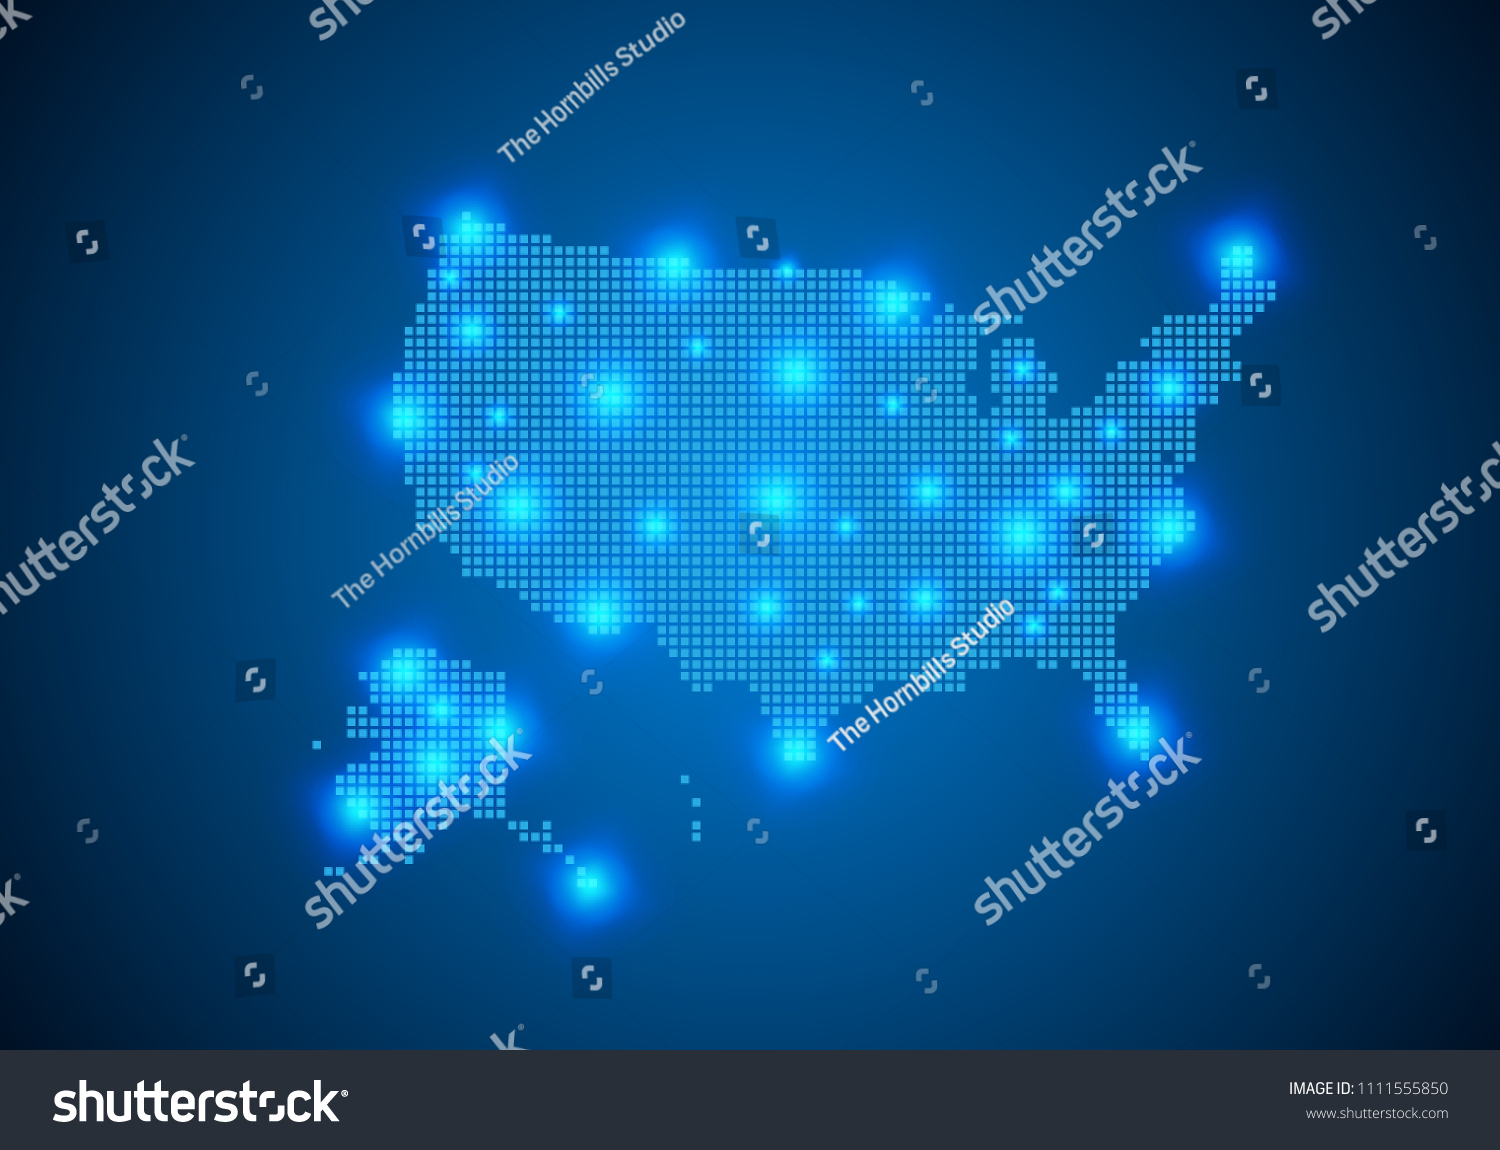 Abstract Blue Background USA Map Internet Stock Vector (Royalty Free ...